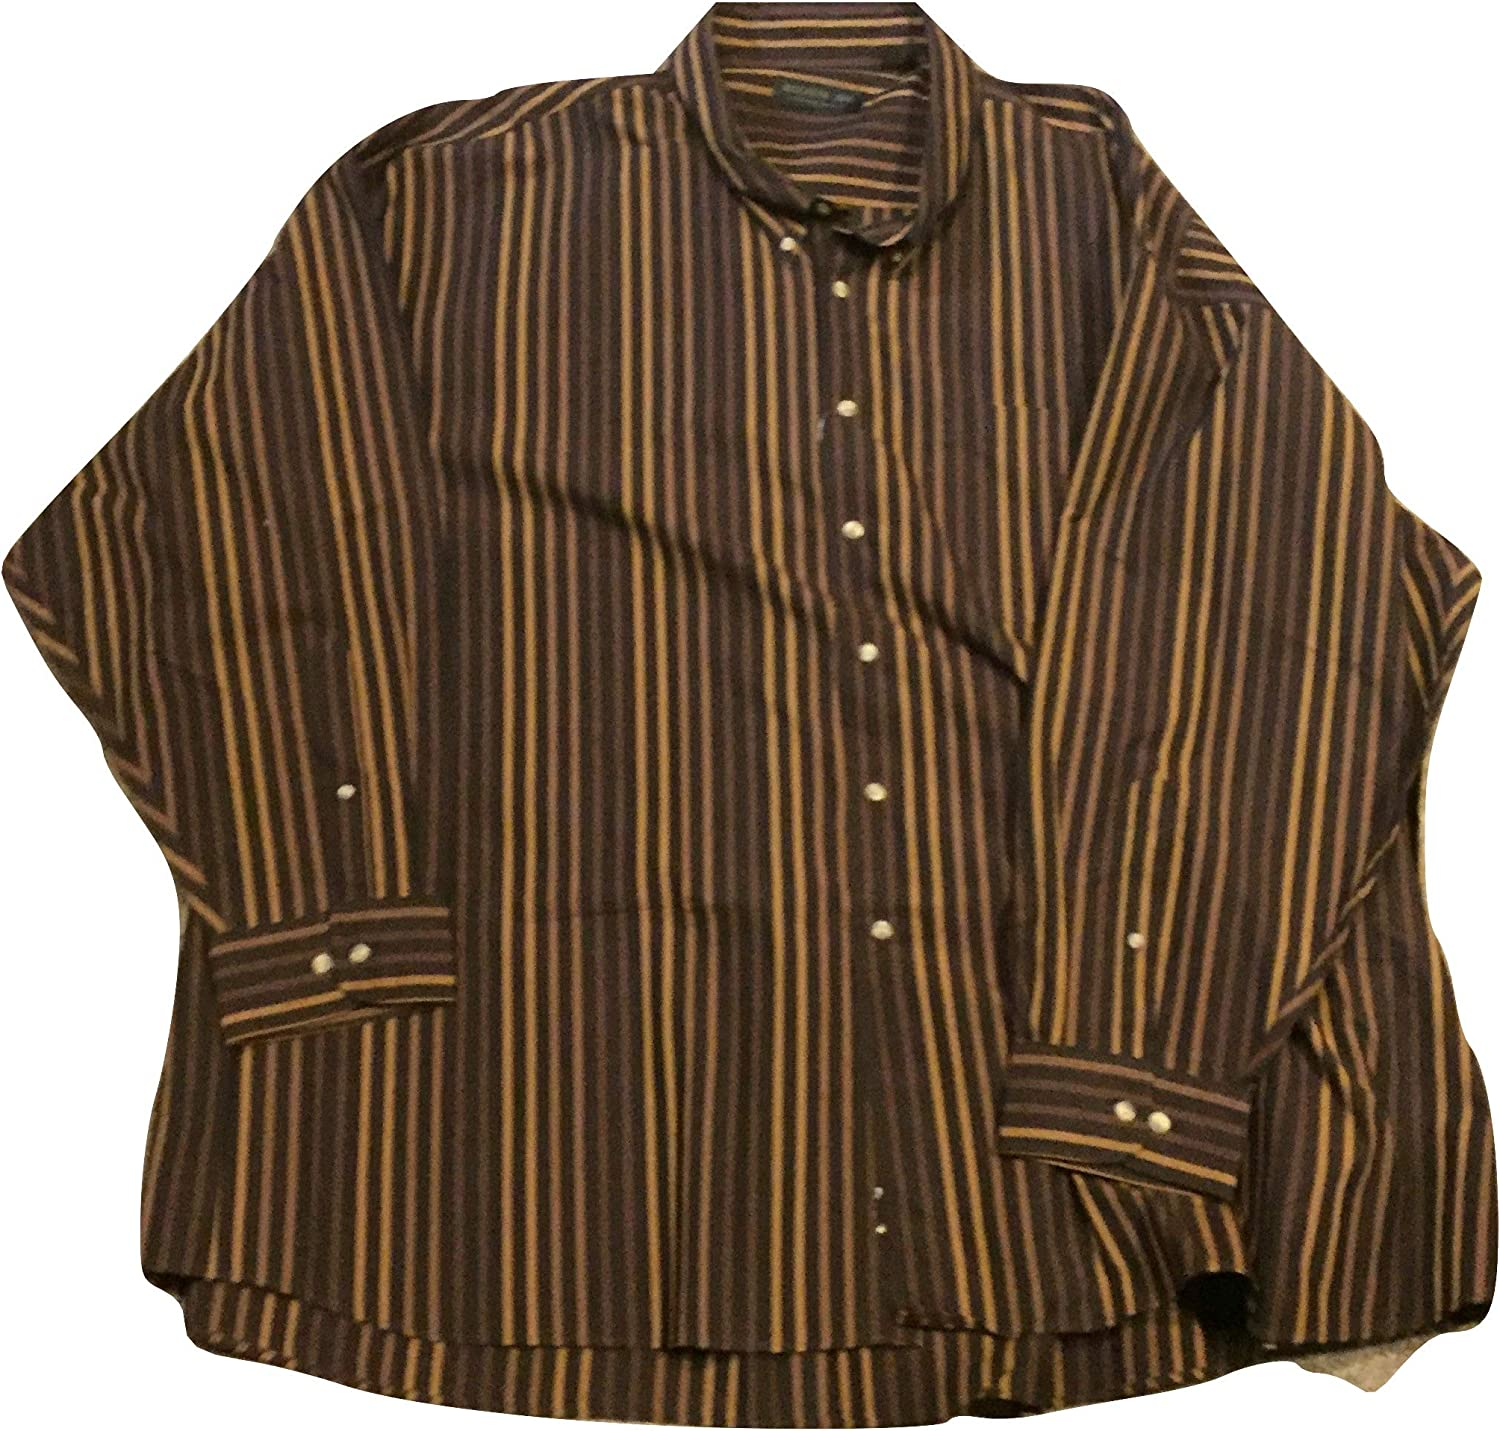 Biscayne Bay 100% Cotton Big and Tall Casual Shirts